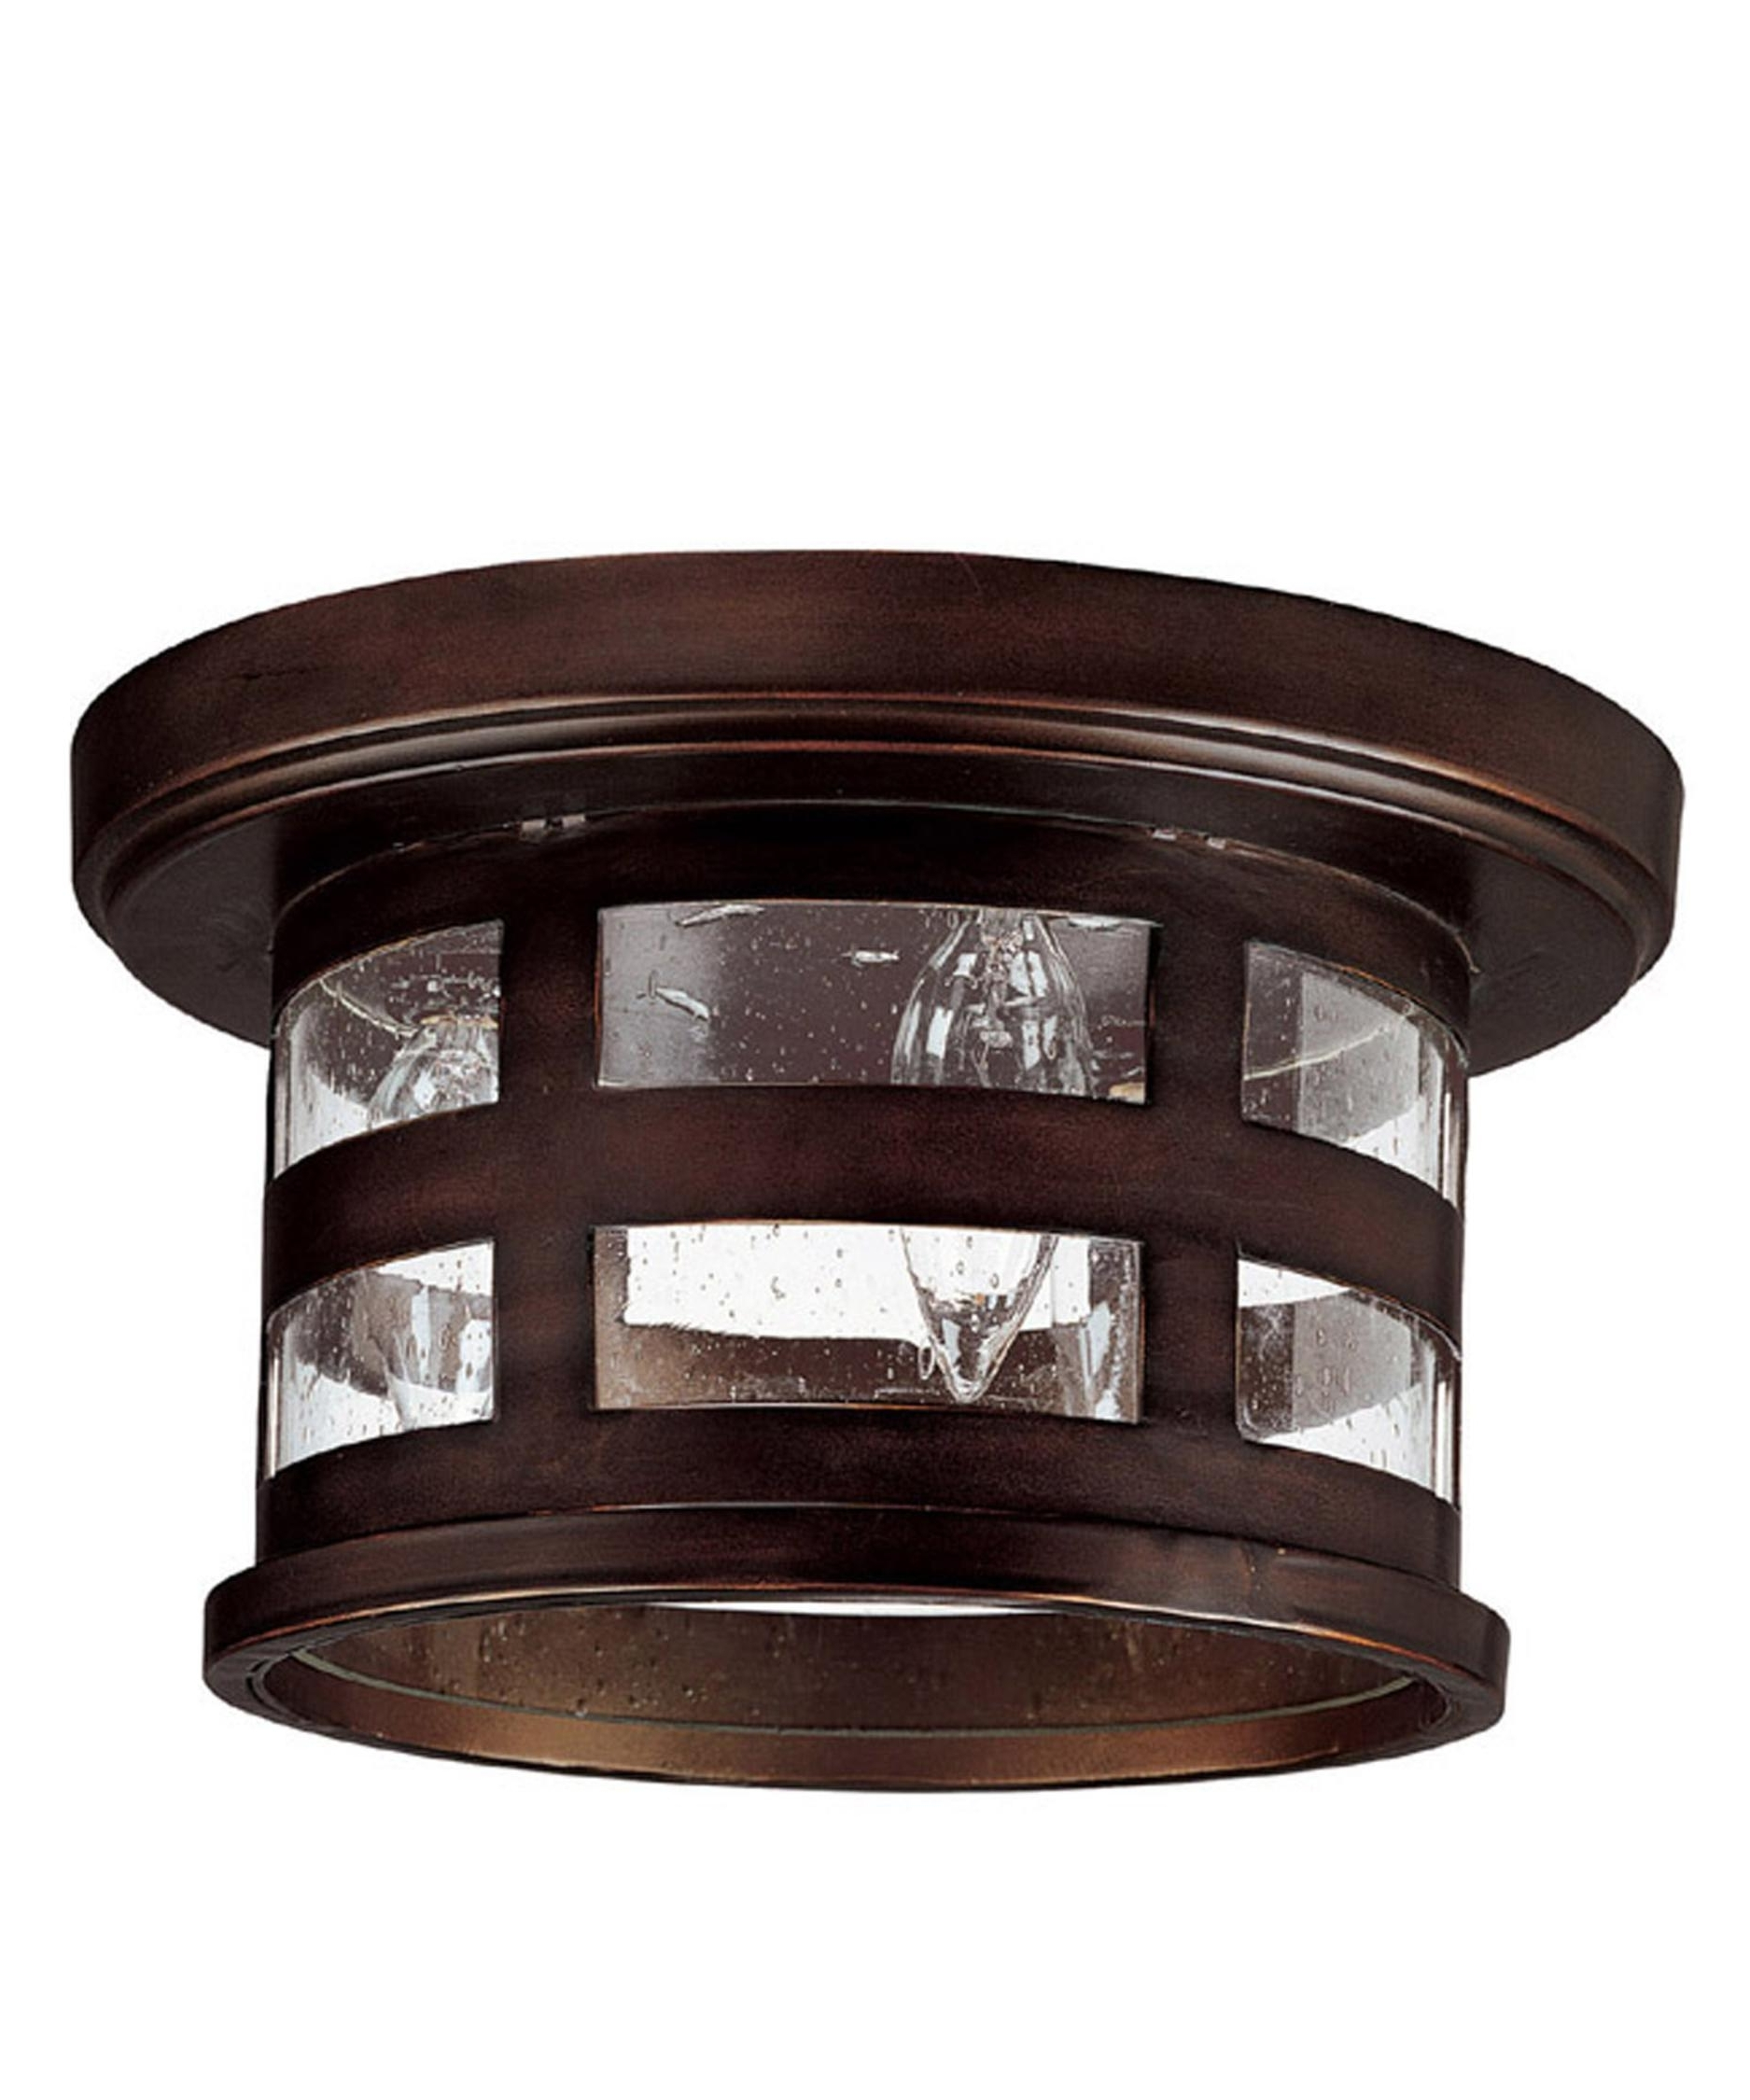 Outdoor Ceiling Flush Mount Lights Throughout Most Up To Date Capital Lighting 9956 Mission Hills 11 Inch Wide 3 Light Outdoor (View 17 of 20)